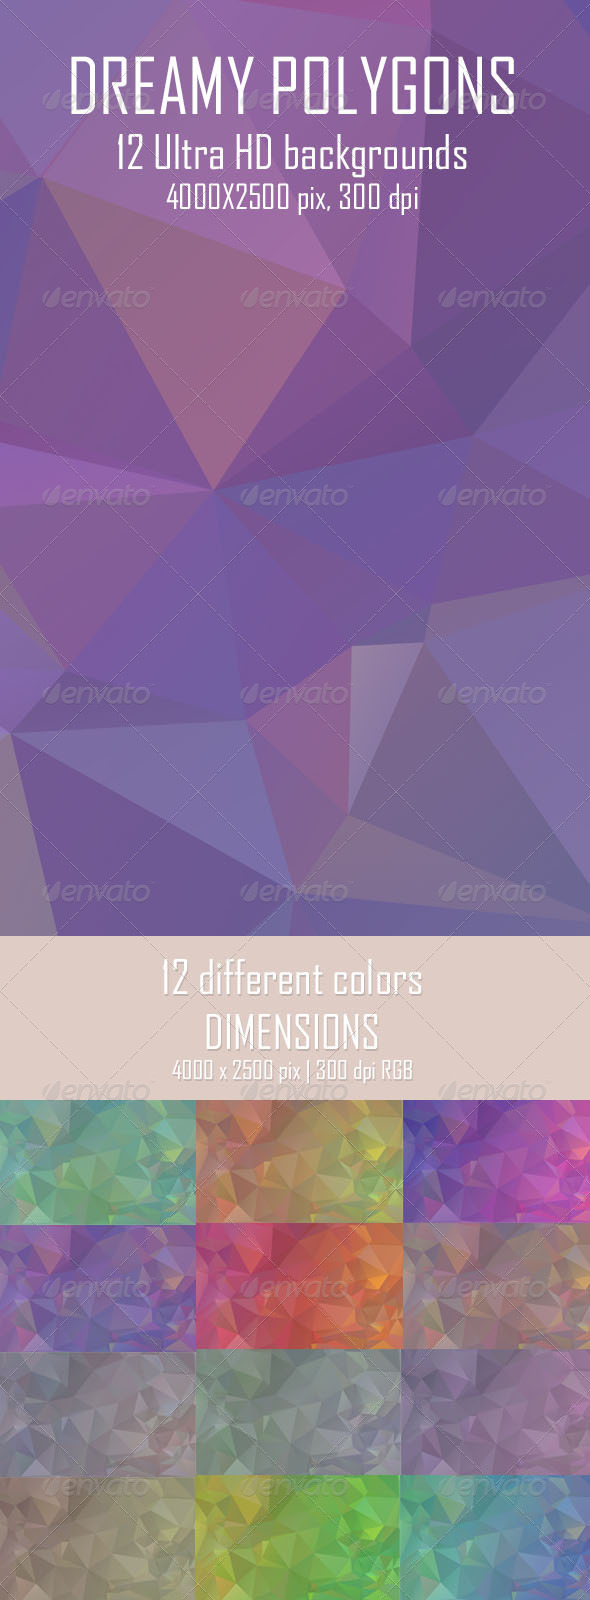 Dreamy Polygon Backgrounds - Abstract Backgrounds